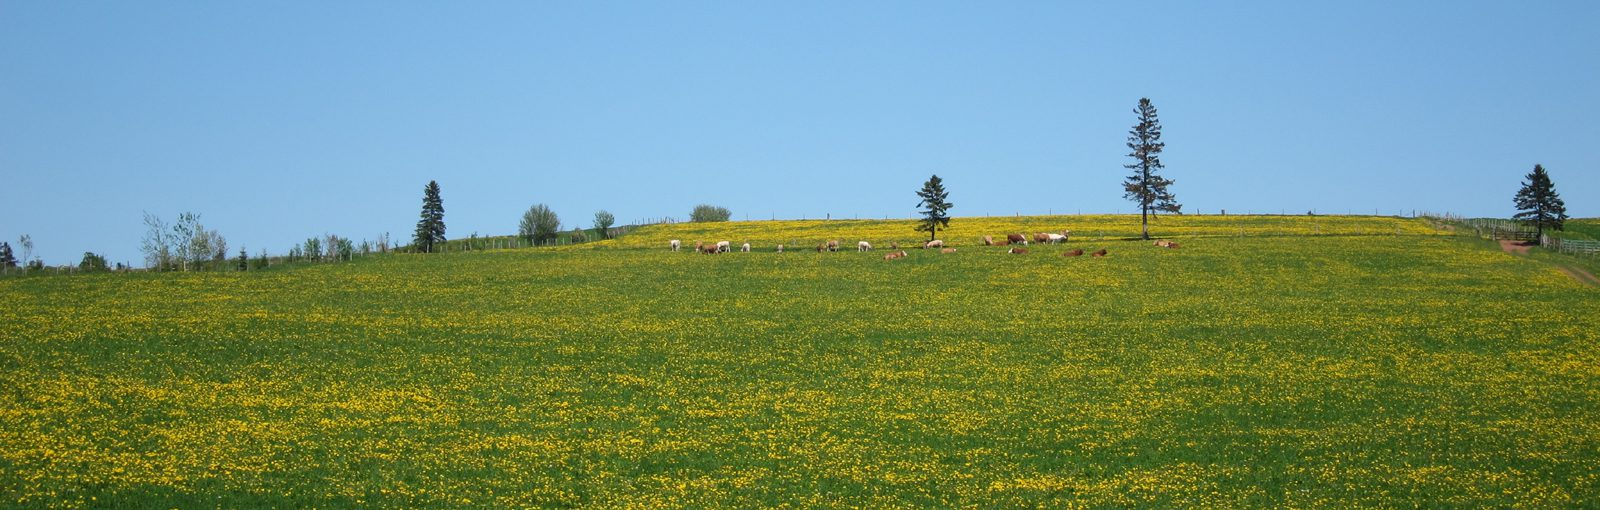 Nova Scotia Field with flowers and cows-sliver